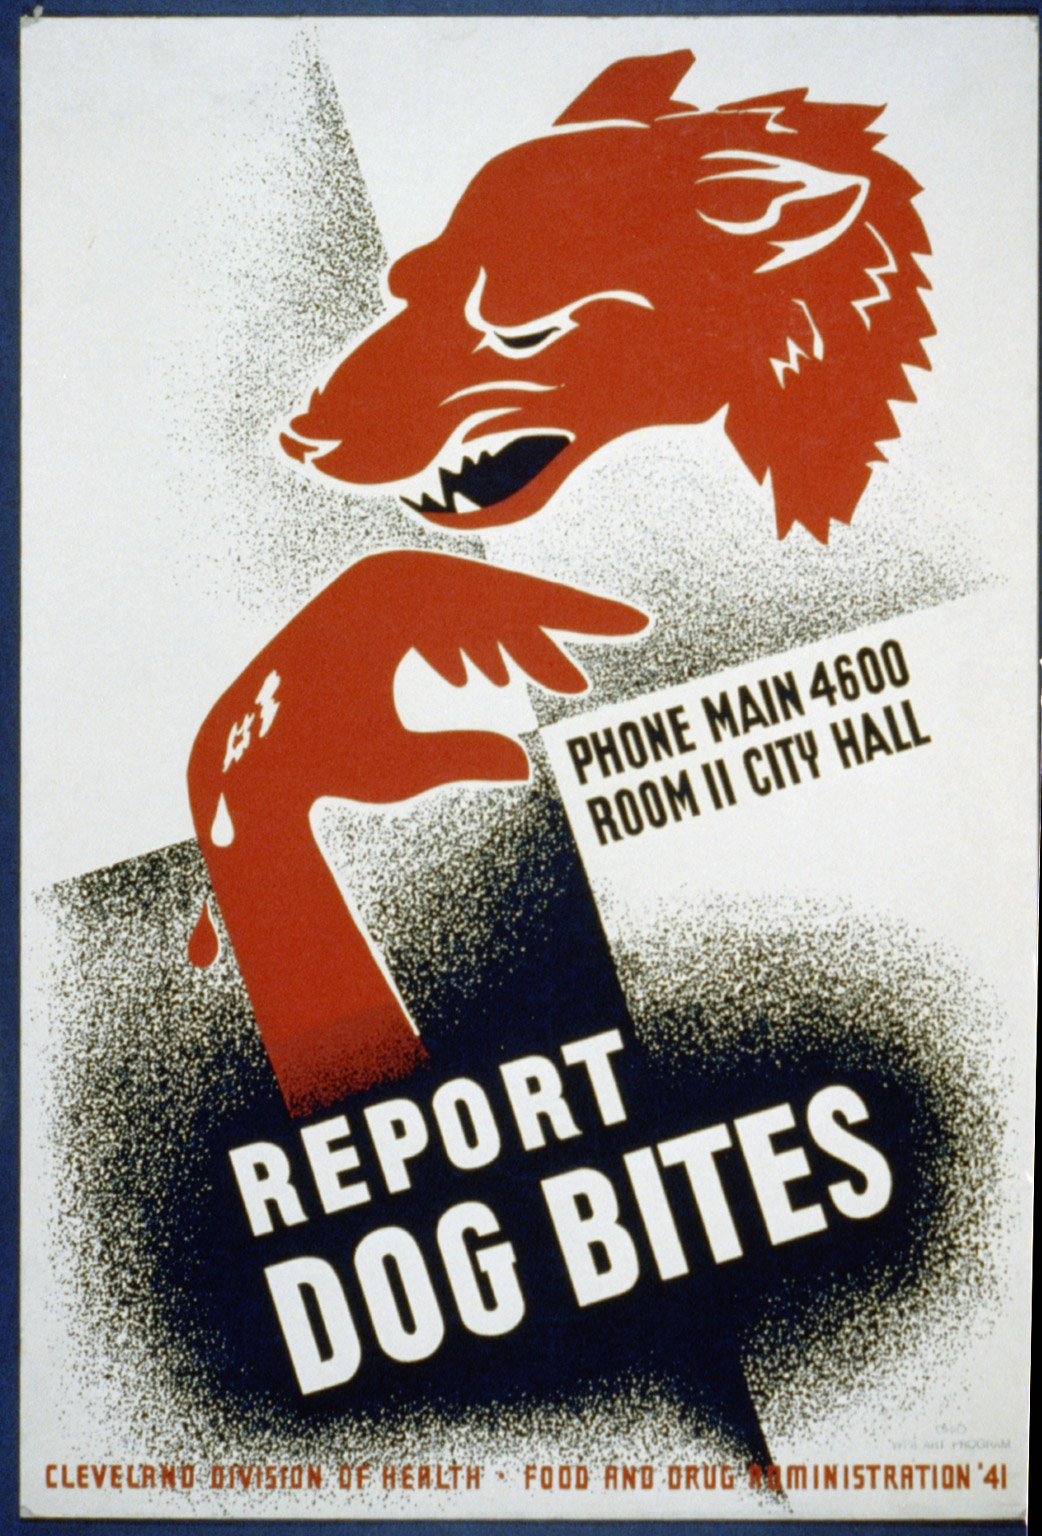 Poster for the Cleveland Division of Health encouraging dog bite victims to report dog bites to the proper authorities, showing dog and injured hand. Created in 1941.